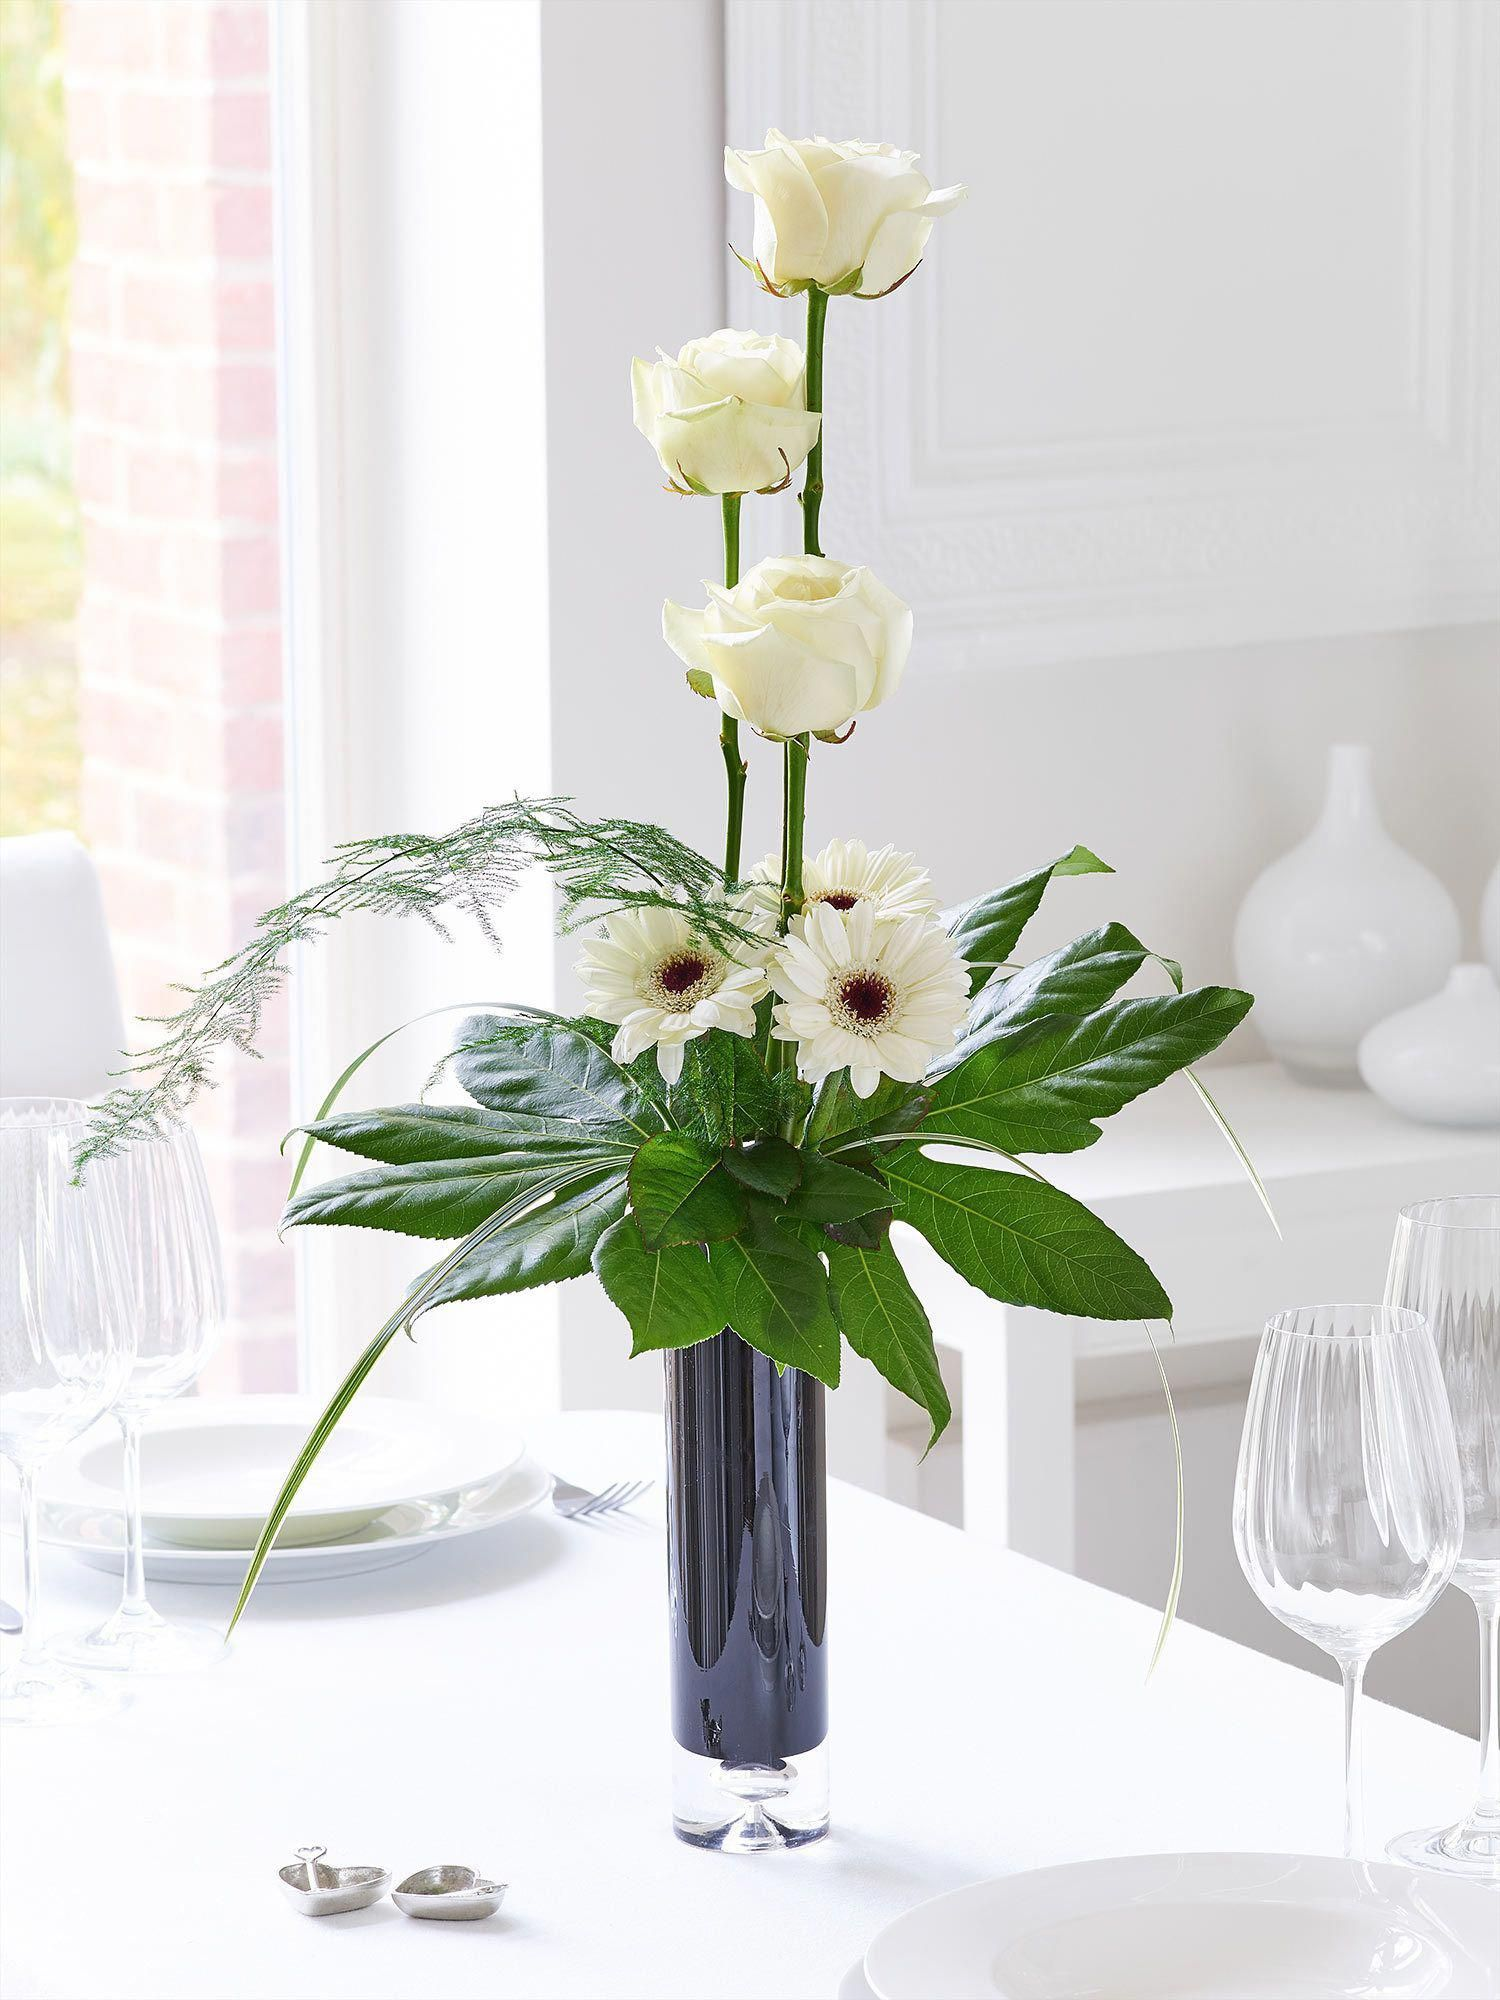 Wedding Flower Arrangements If You Find Yourself With More